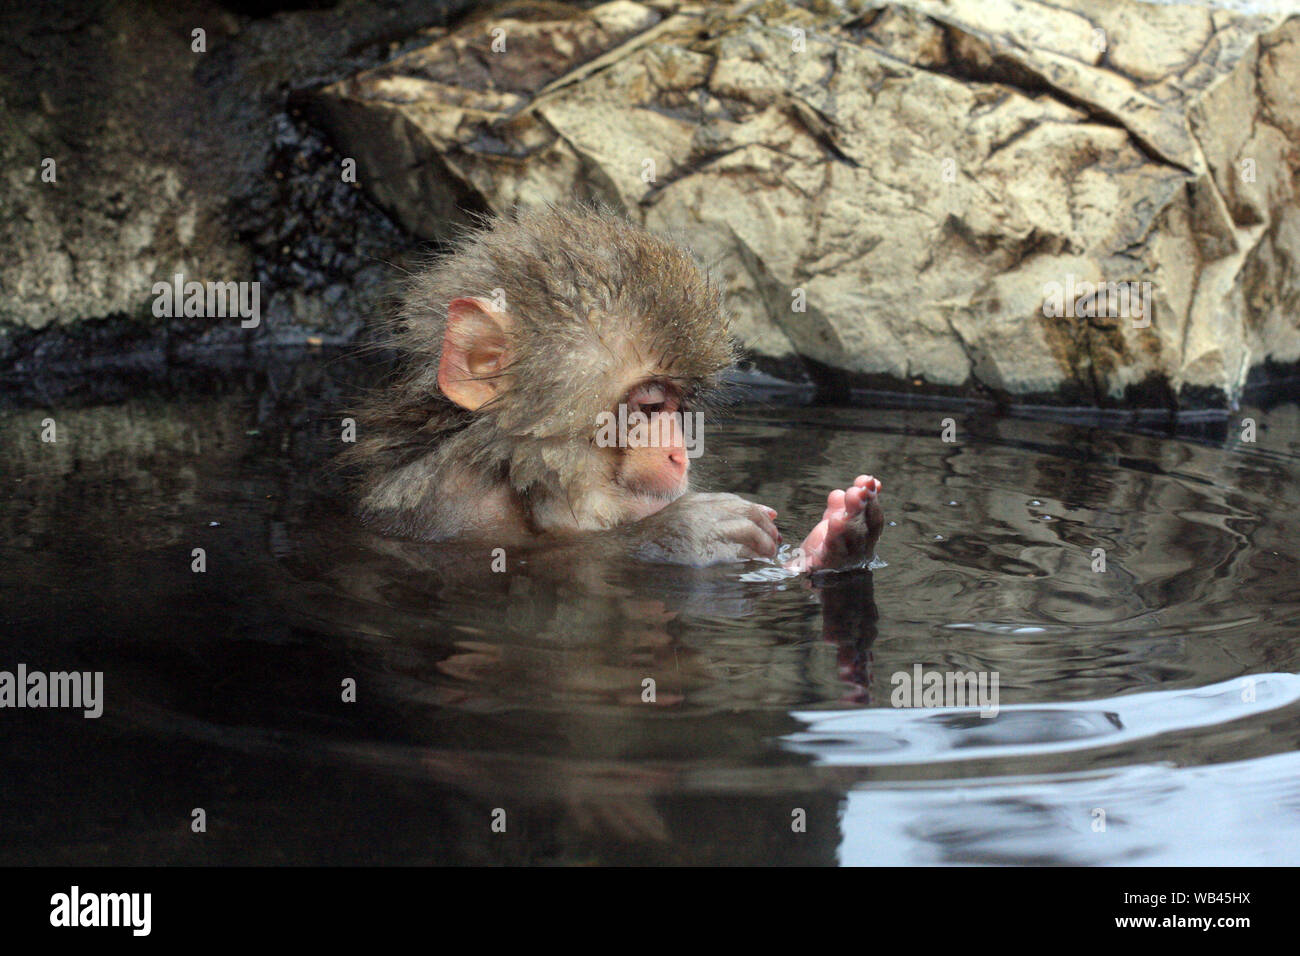 Hot bath for snow monkeys in Jigokudani Monkey Park in Nagano Japan Stock Photo